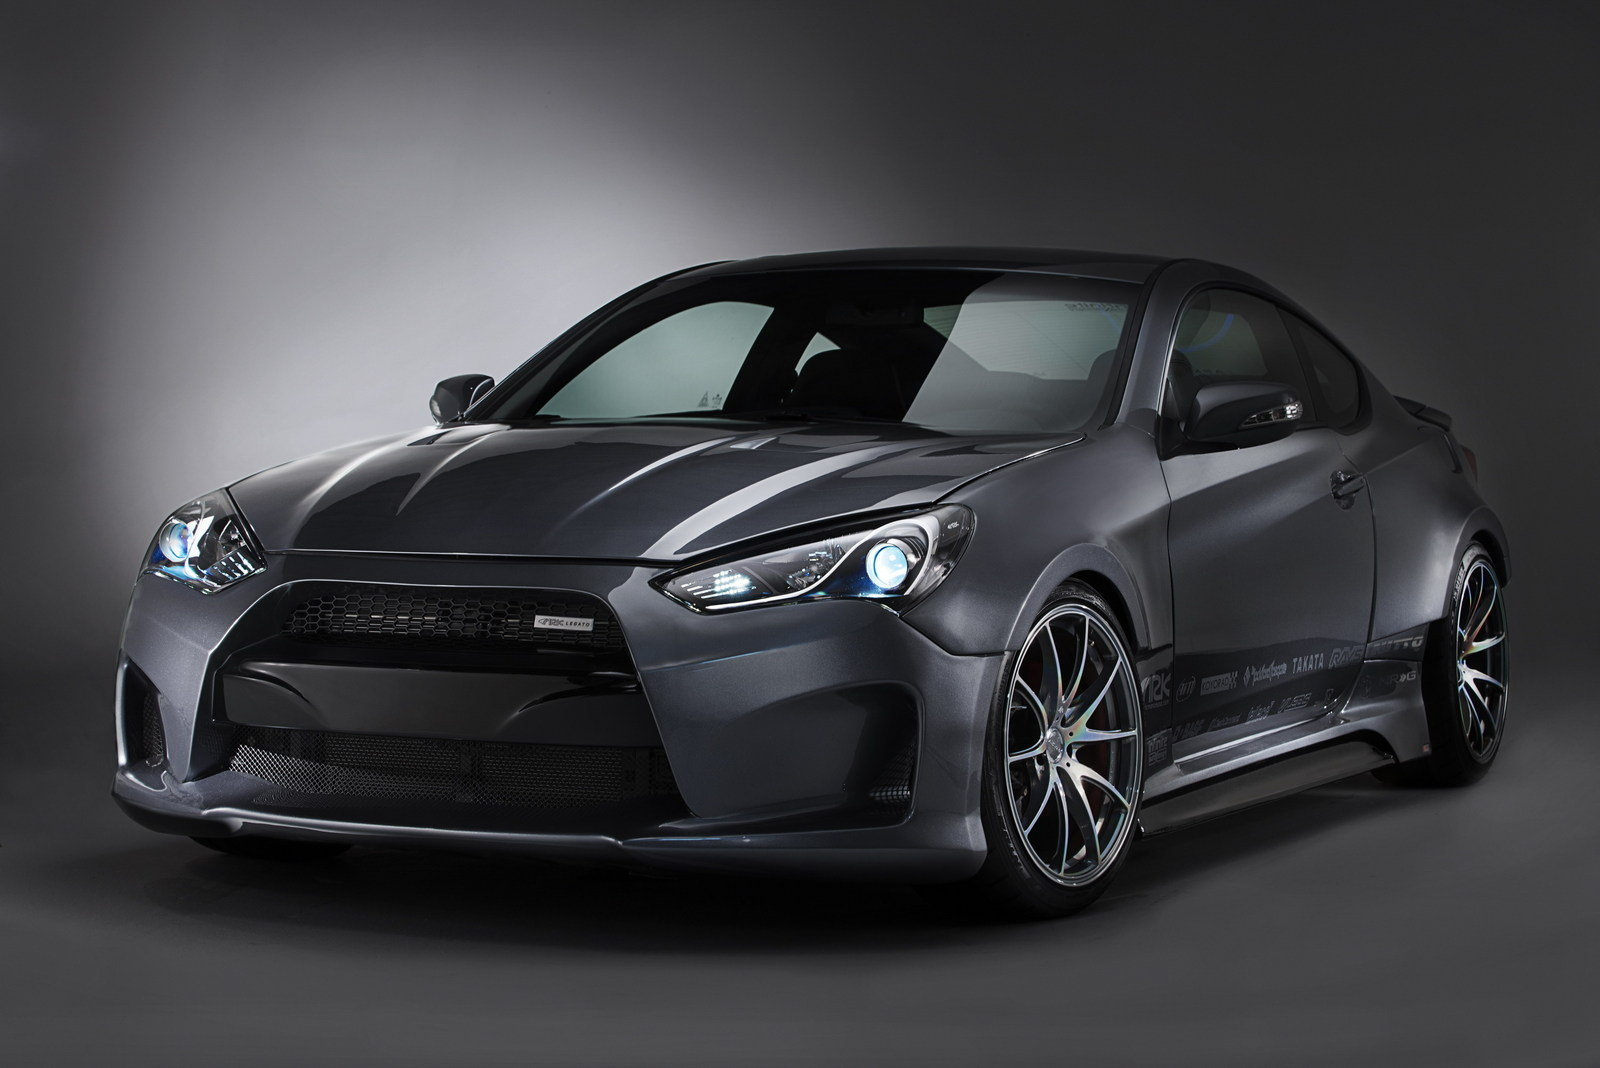 2013 Hyundai Genesis Coupe Legato Concept By Ark